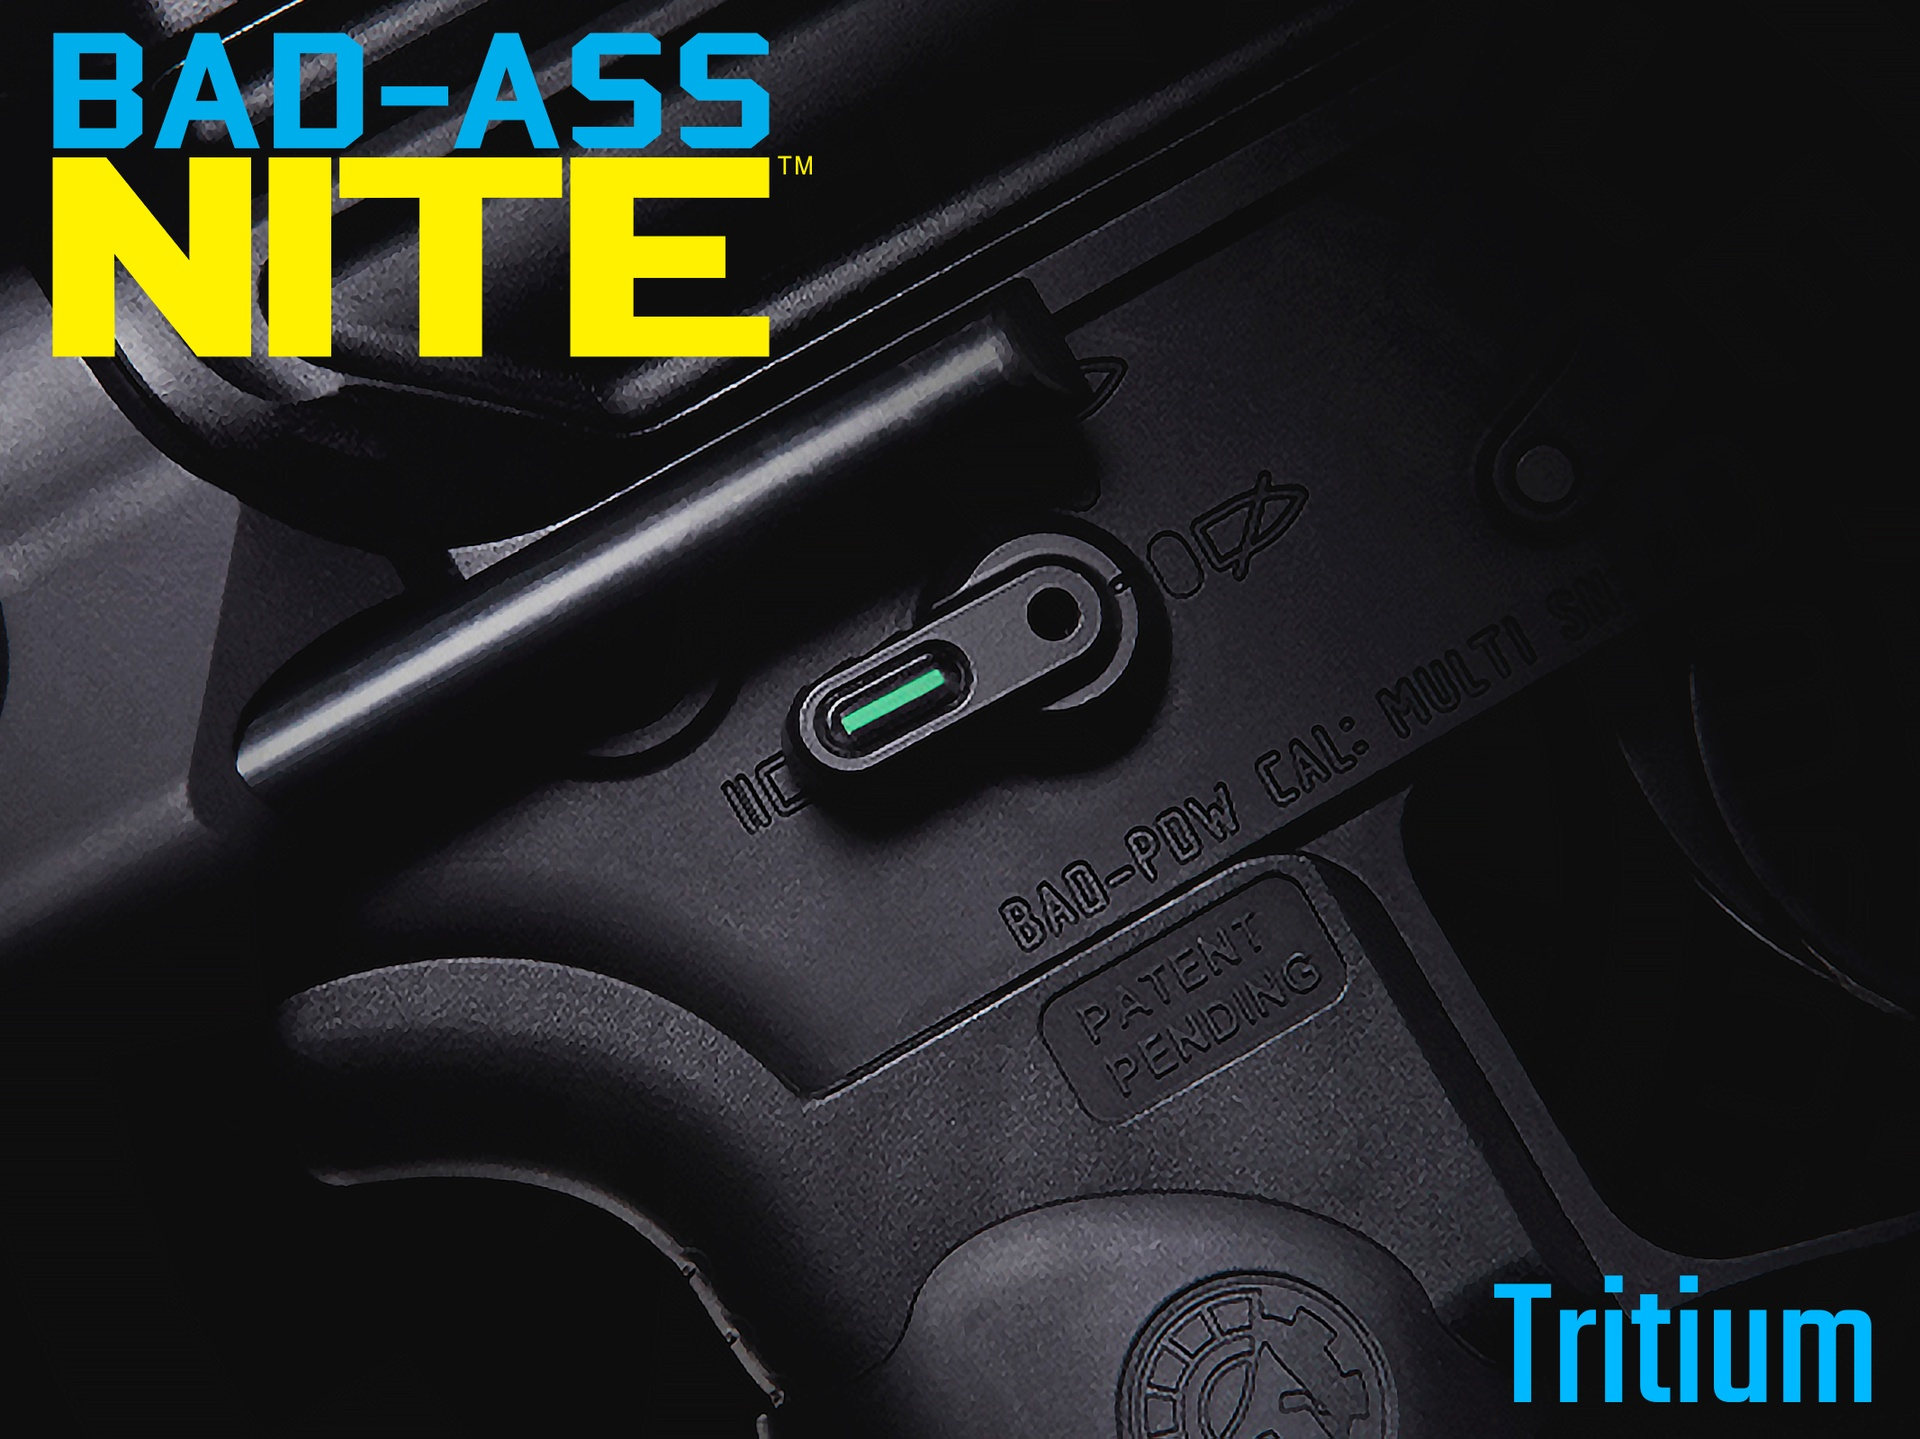 BAD-ASS-NITE Tritium Ambidextrous Safety Selector